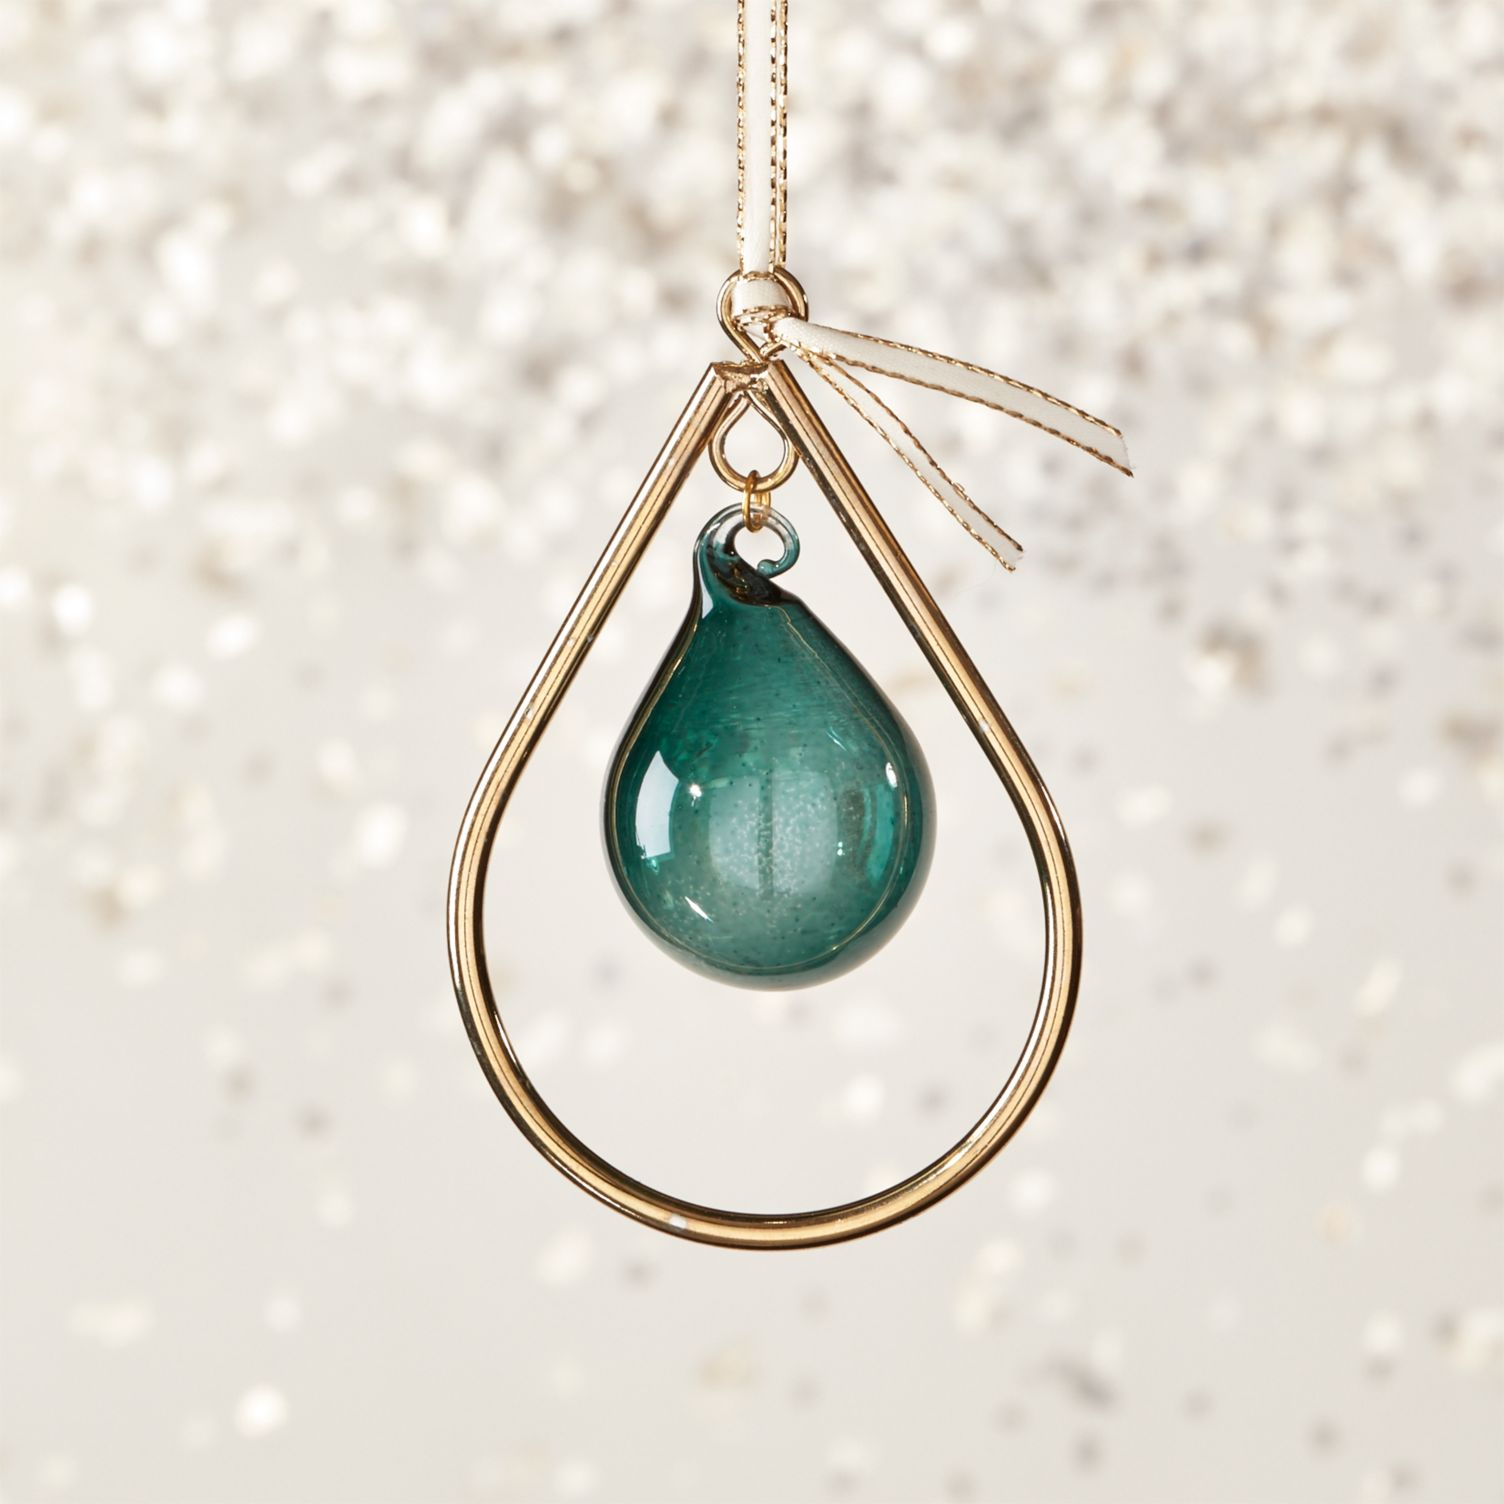 Teal drop ornament from CB2